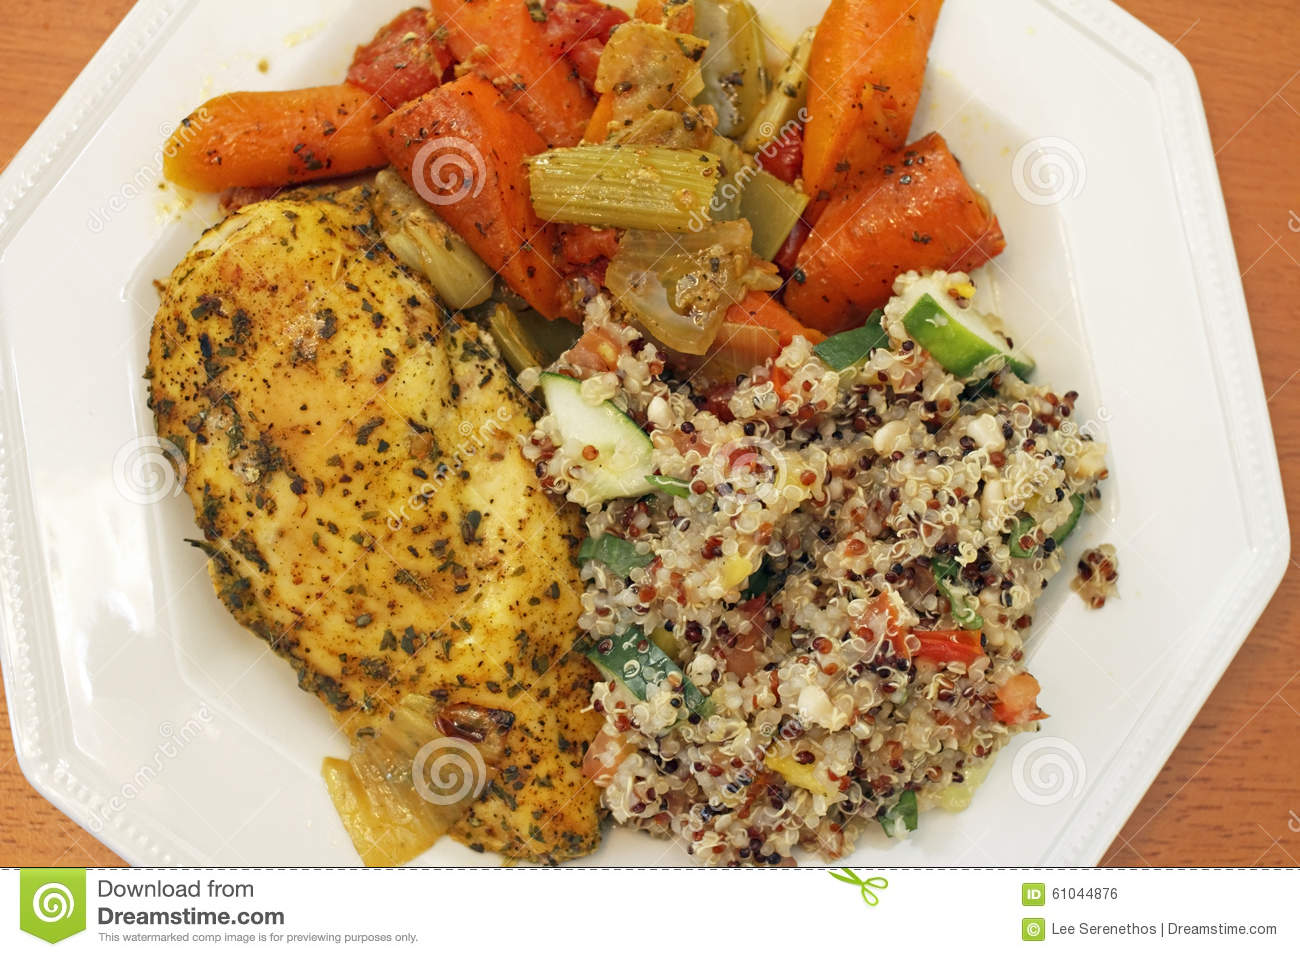 Chicken With Quinoa Salad And Vegetables Stock Photo - Image: 61044876